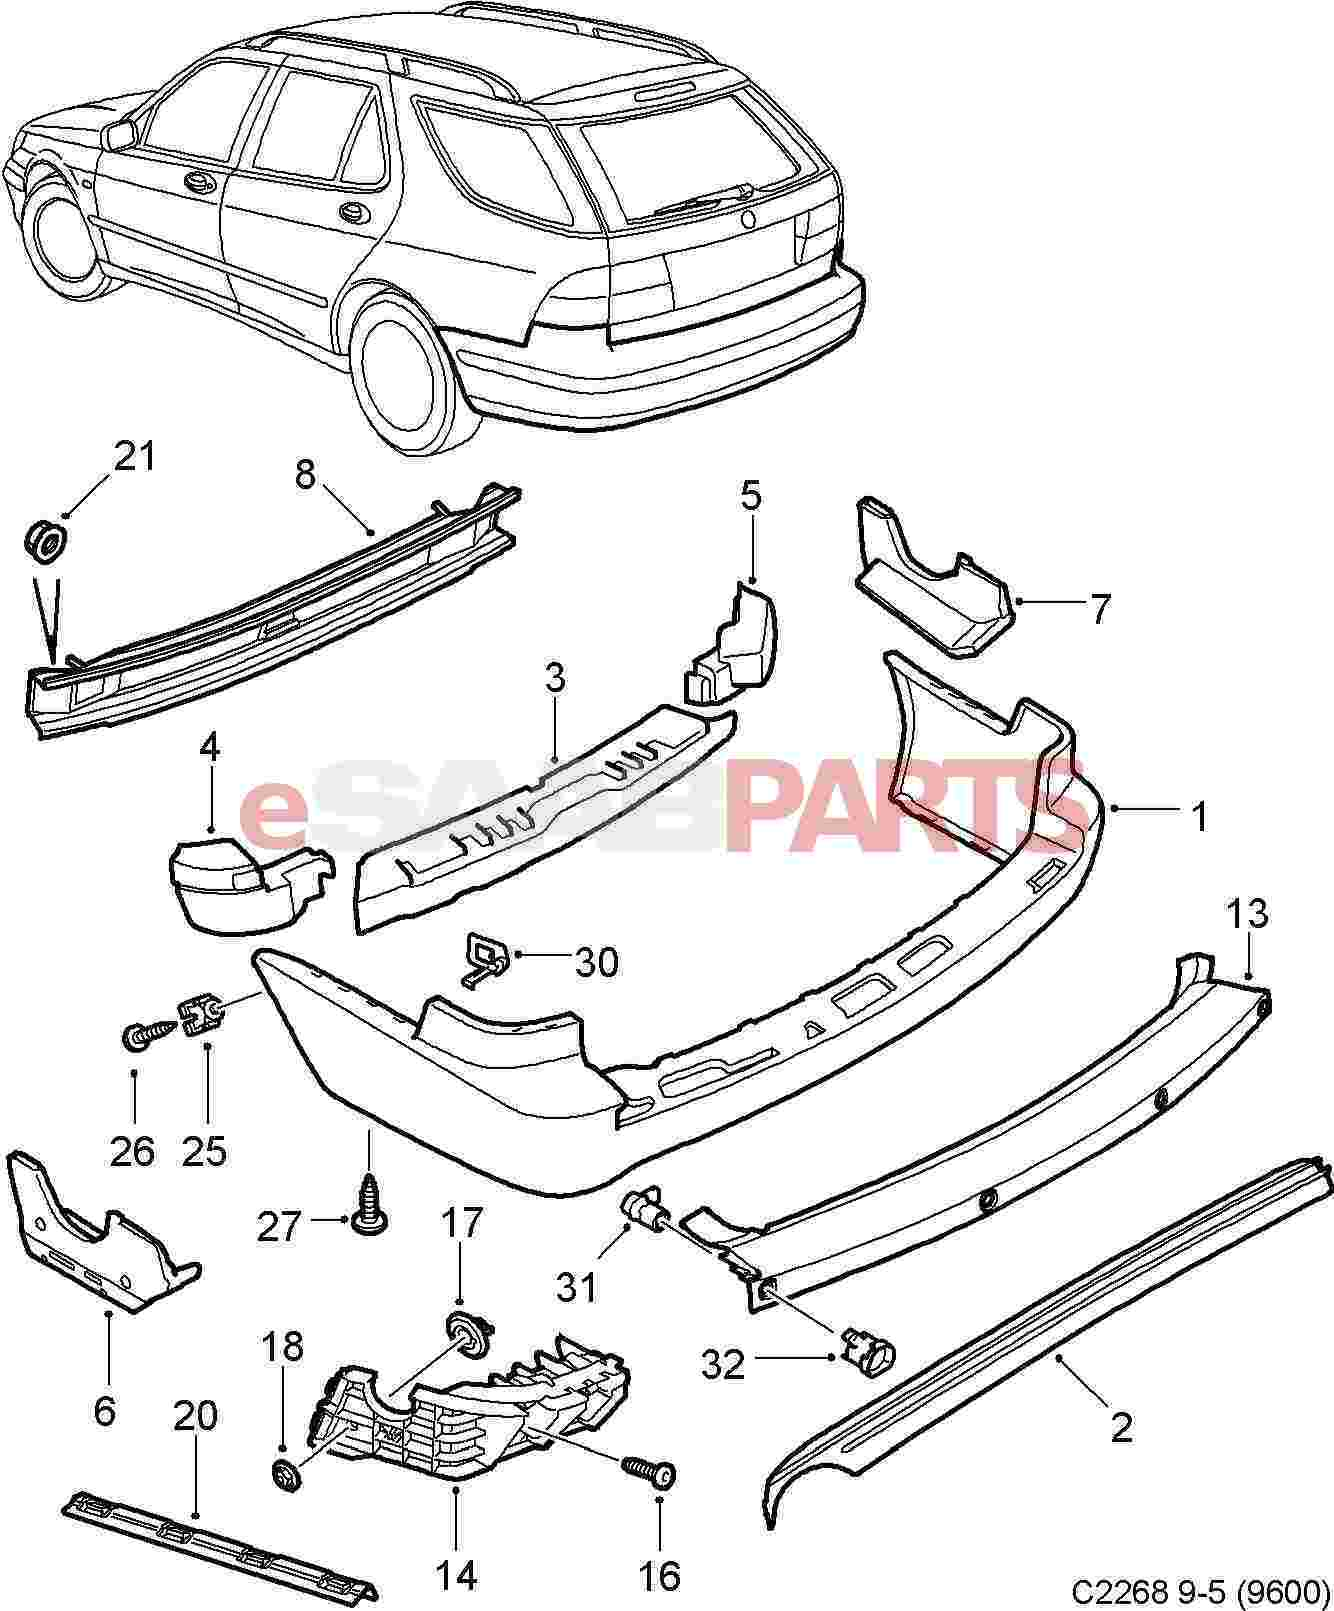 Service manual [2010 Saab 42072 Front Bumper Removal